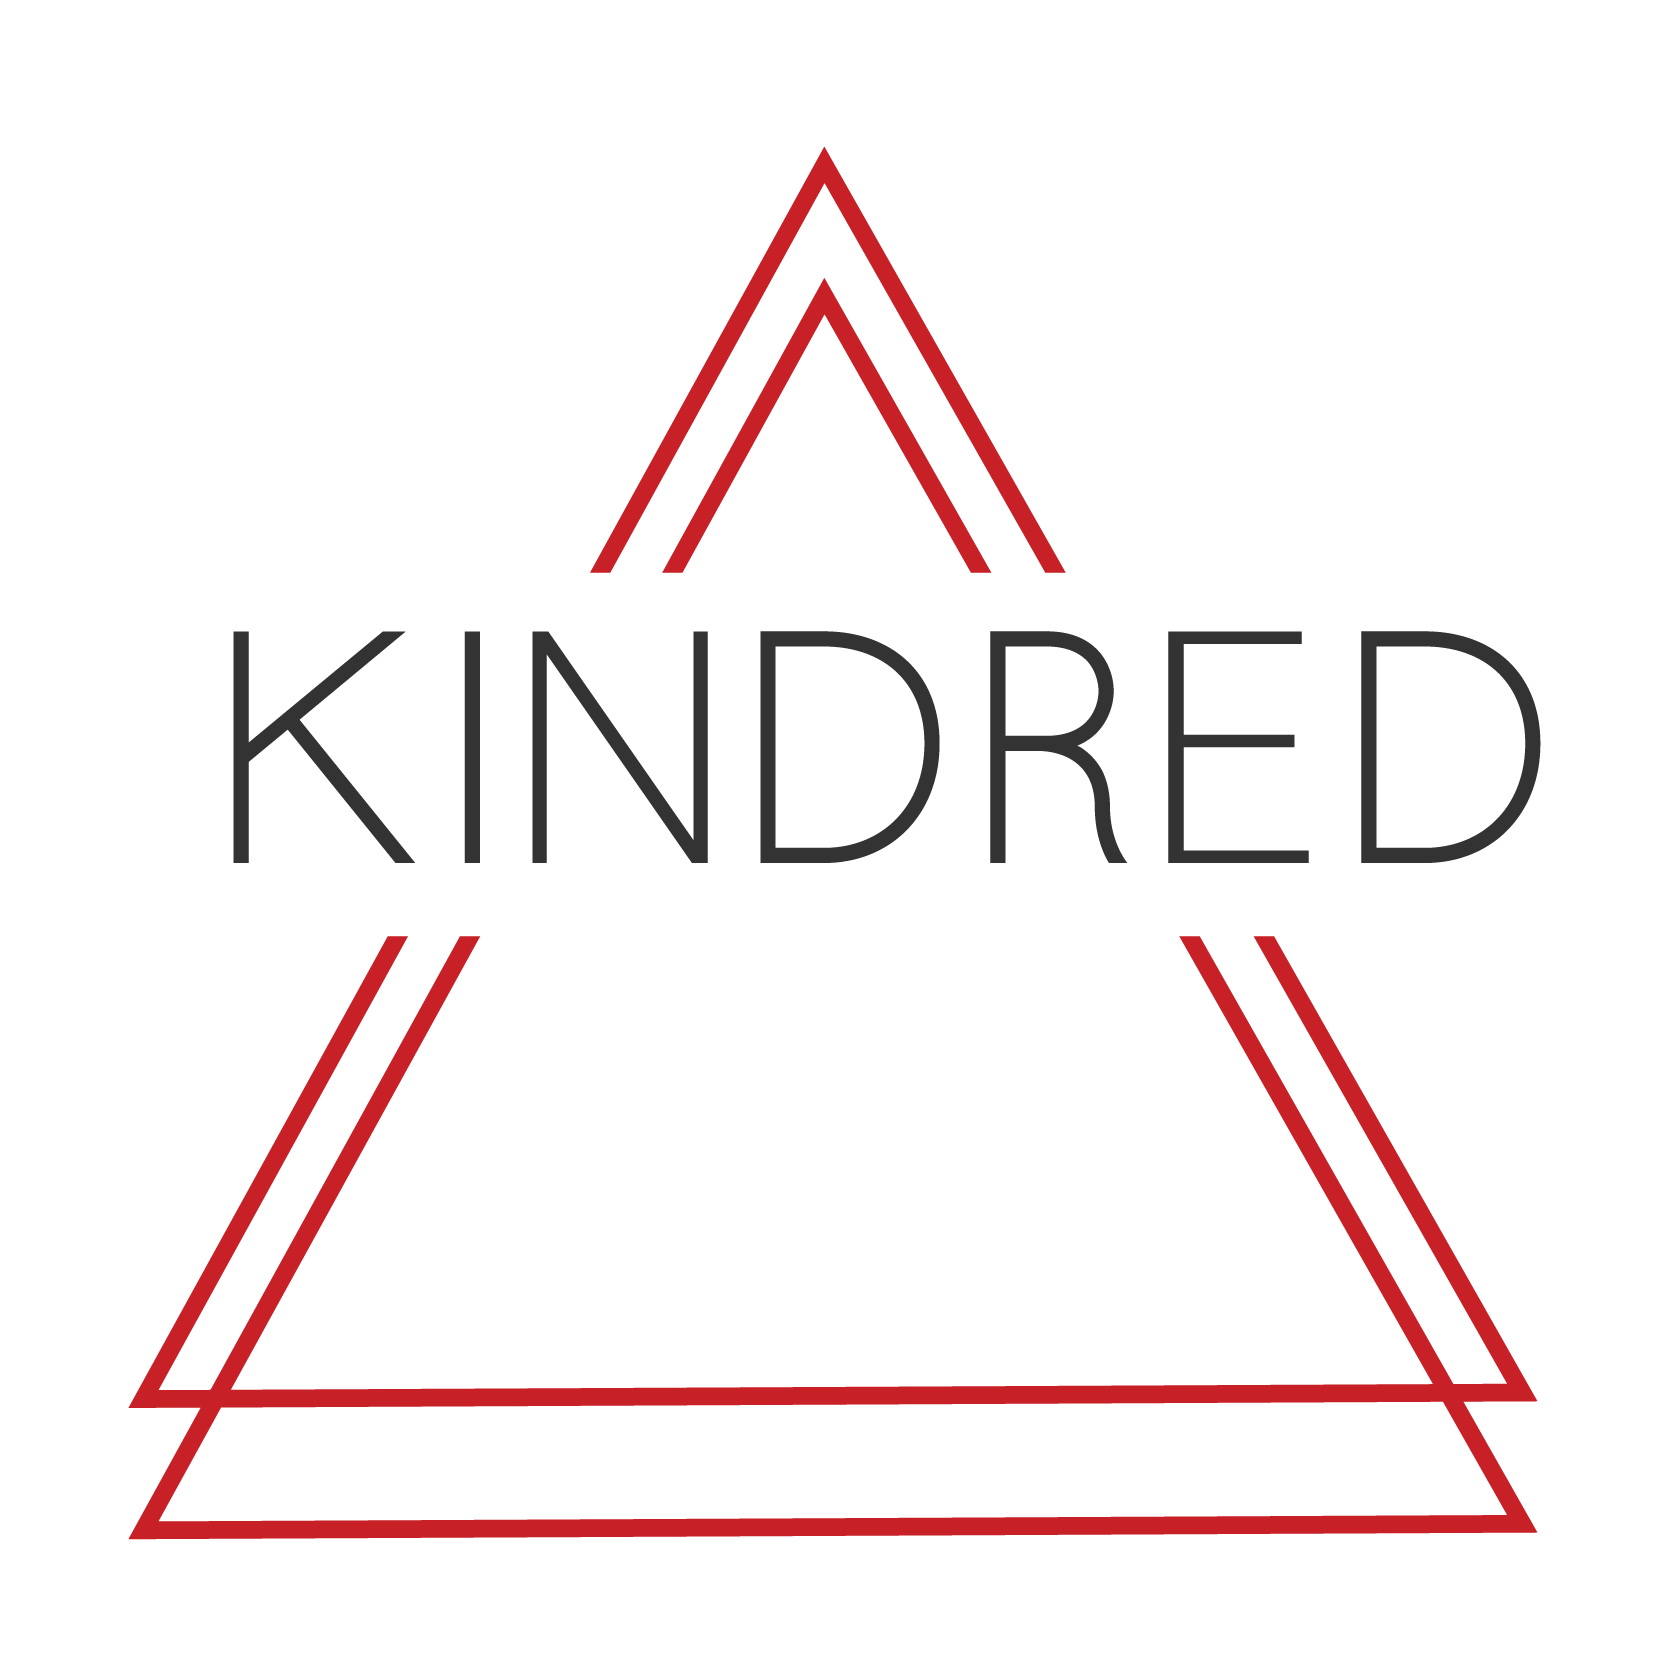 files/KINDRED_-_SQUARE_RED_BLACK.png